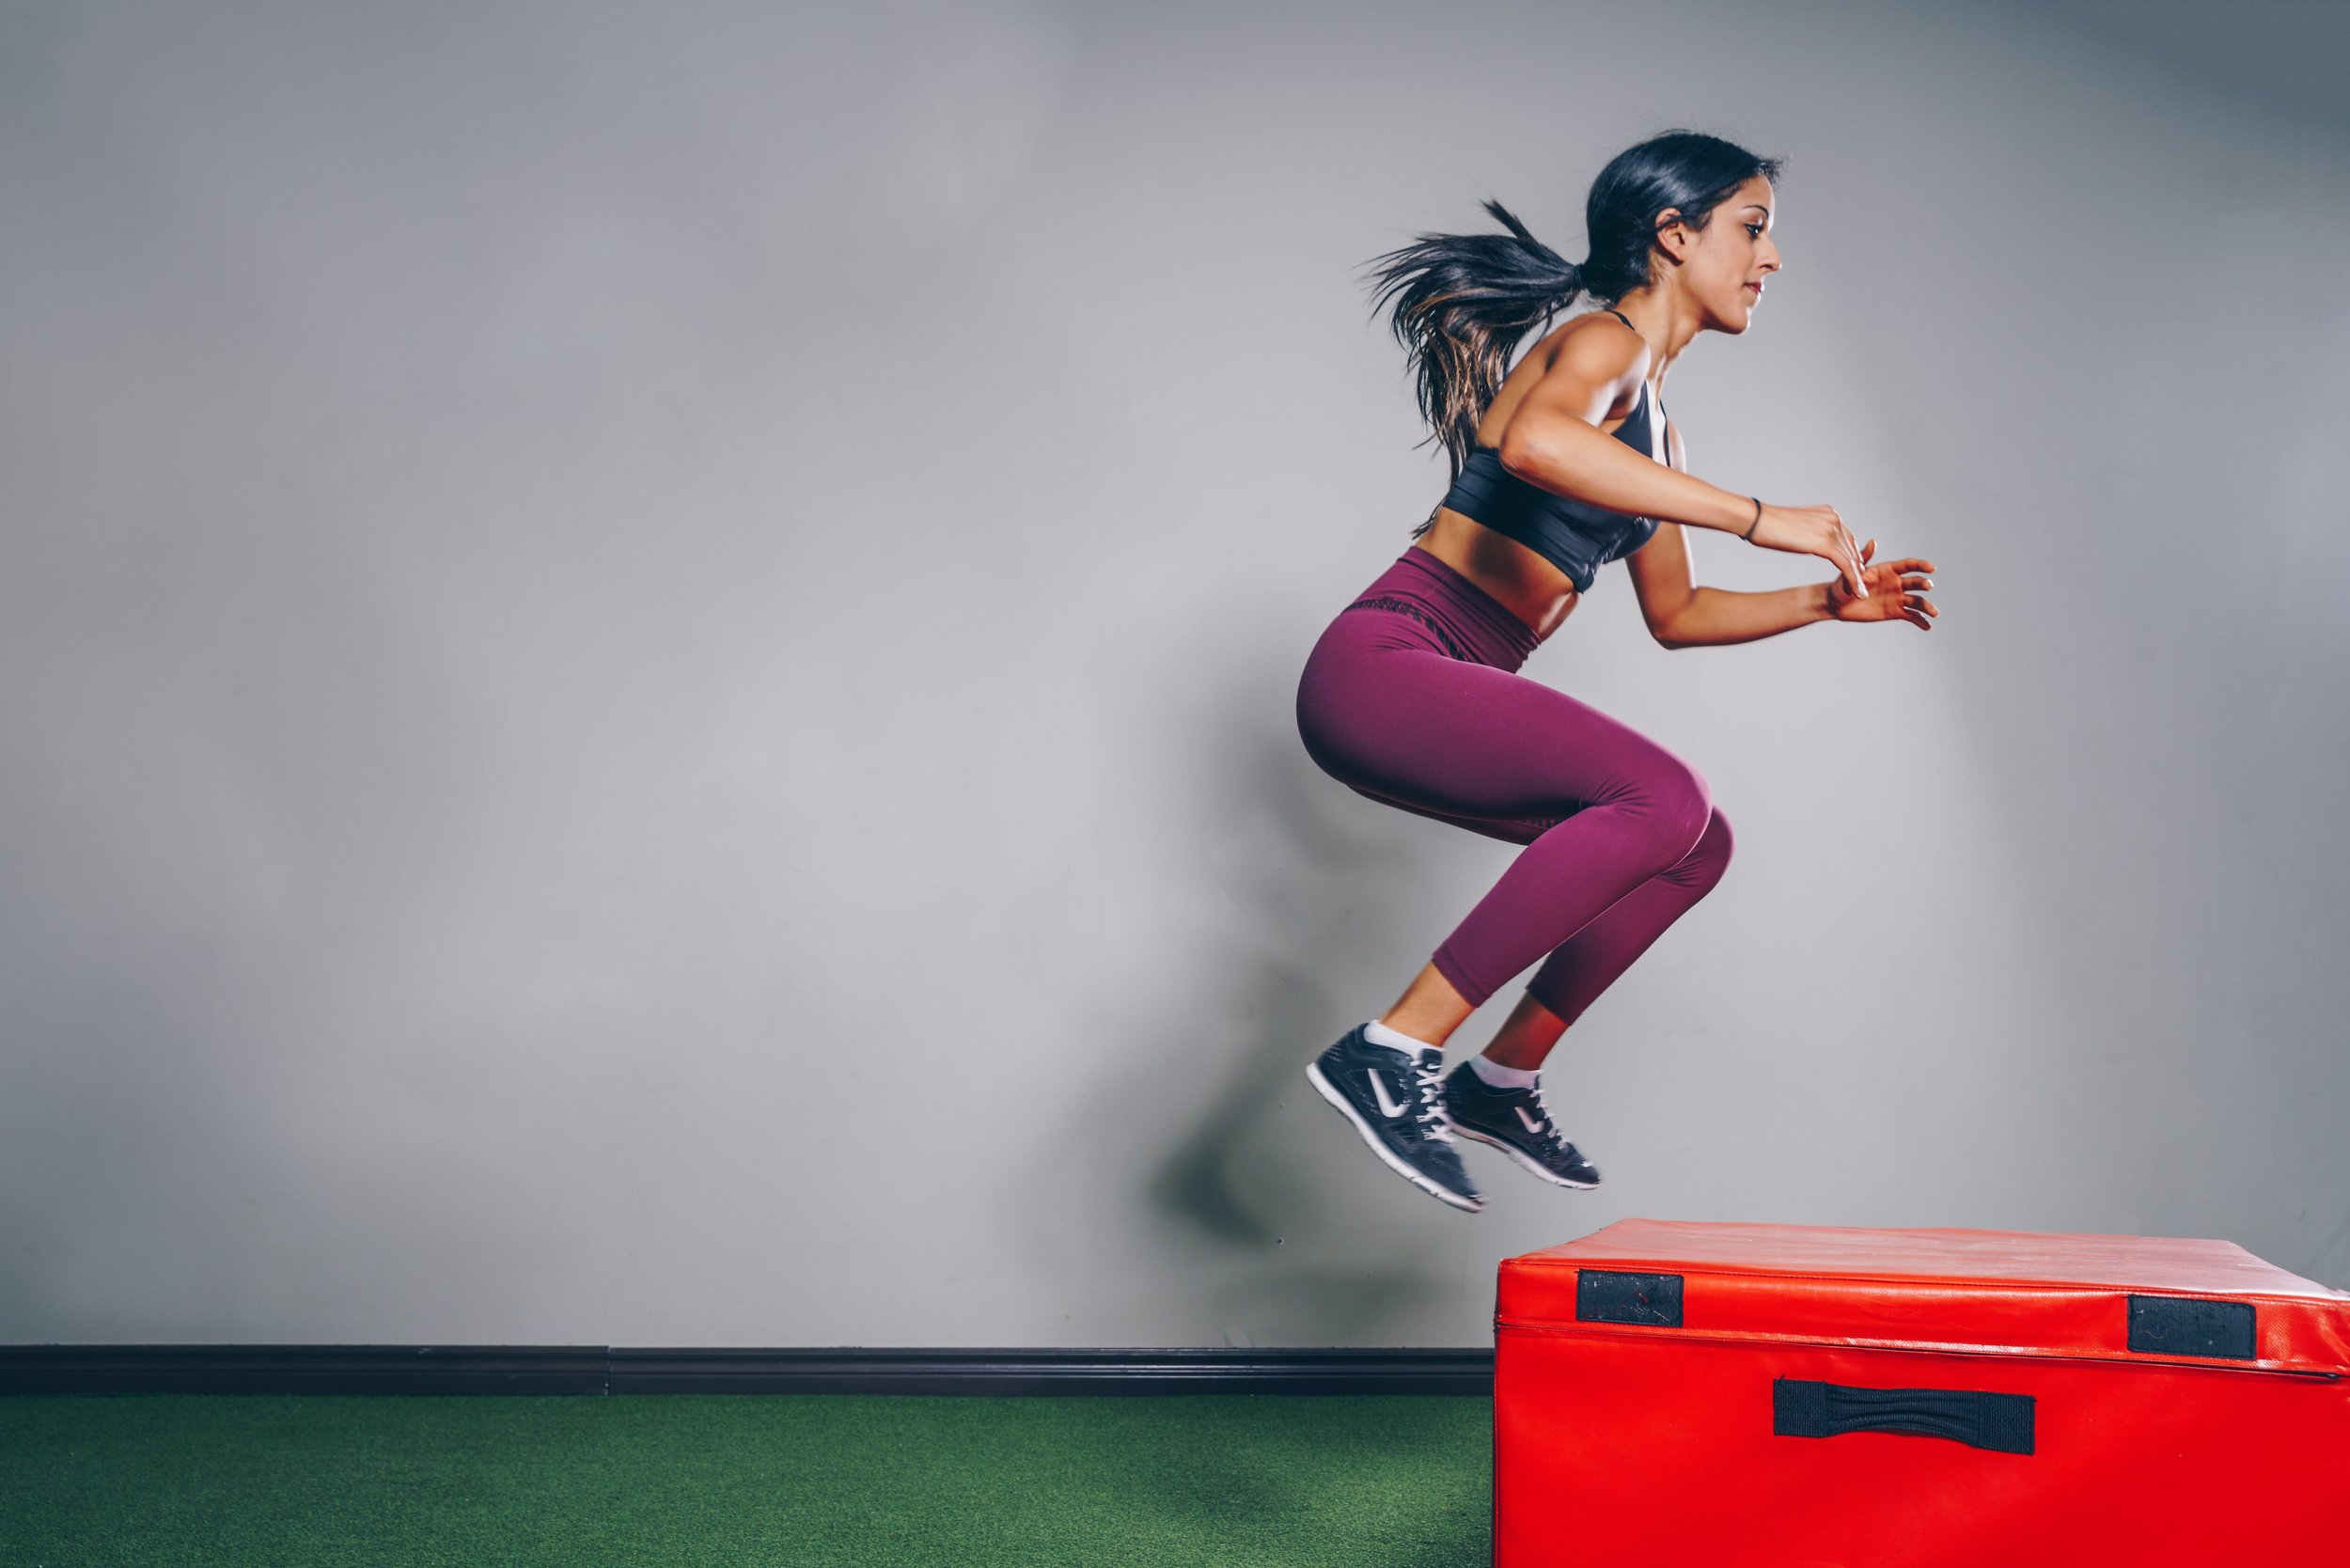 Jumping for fitness